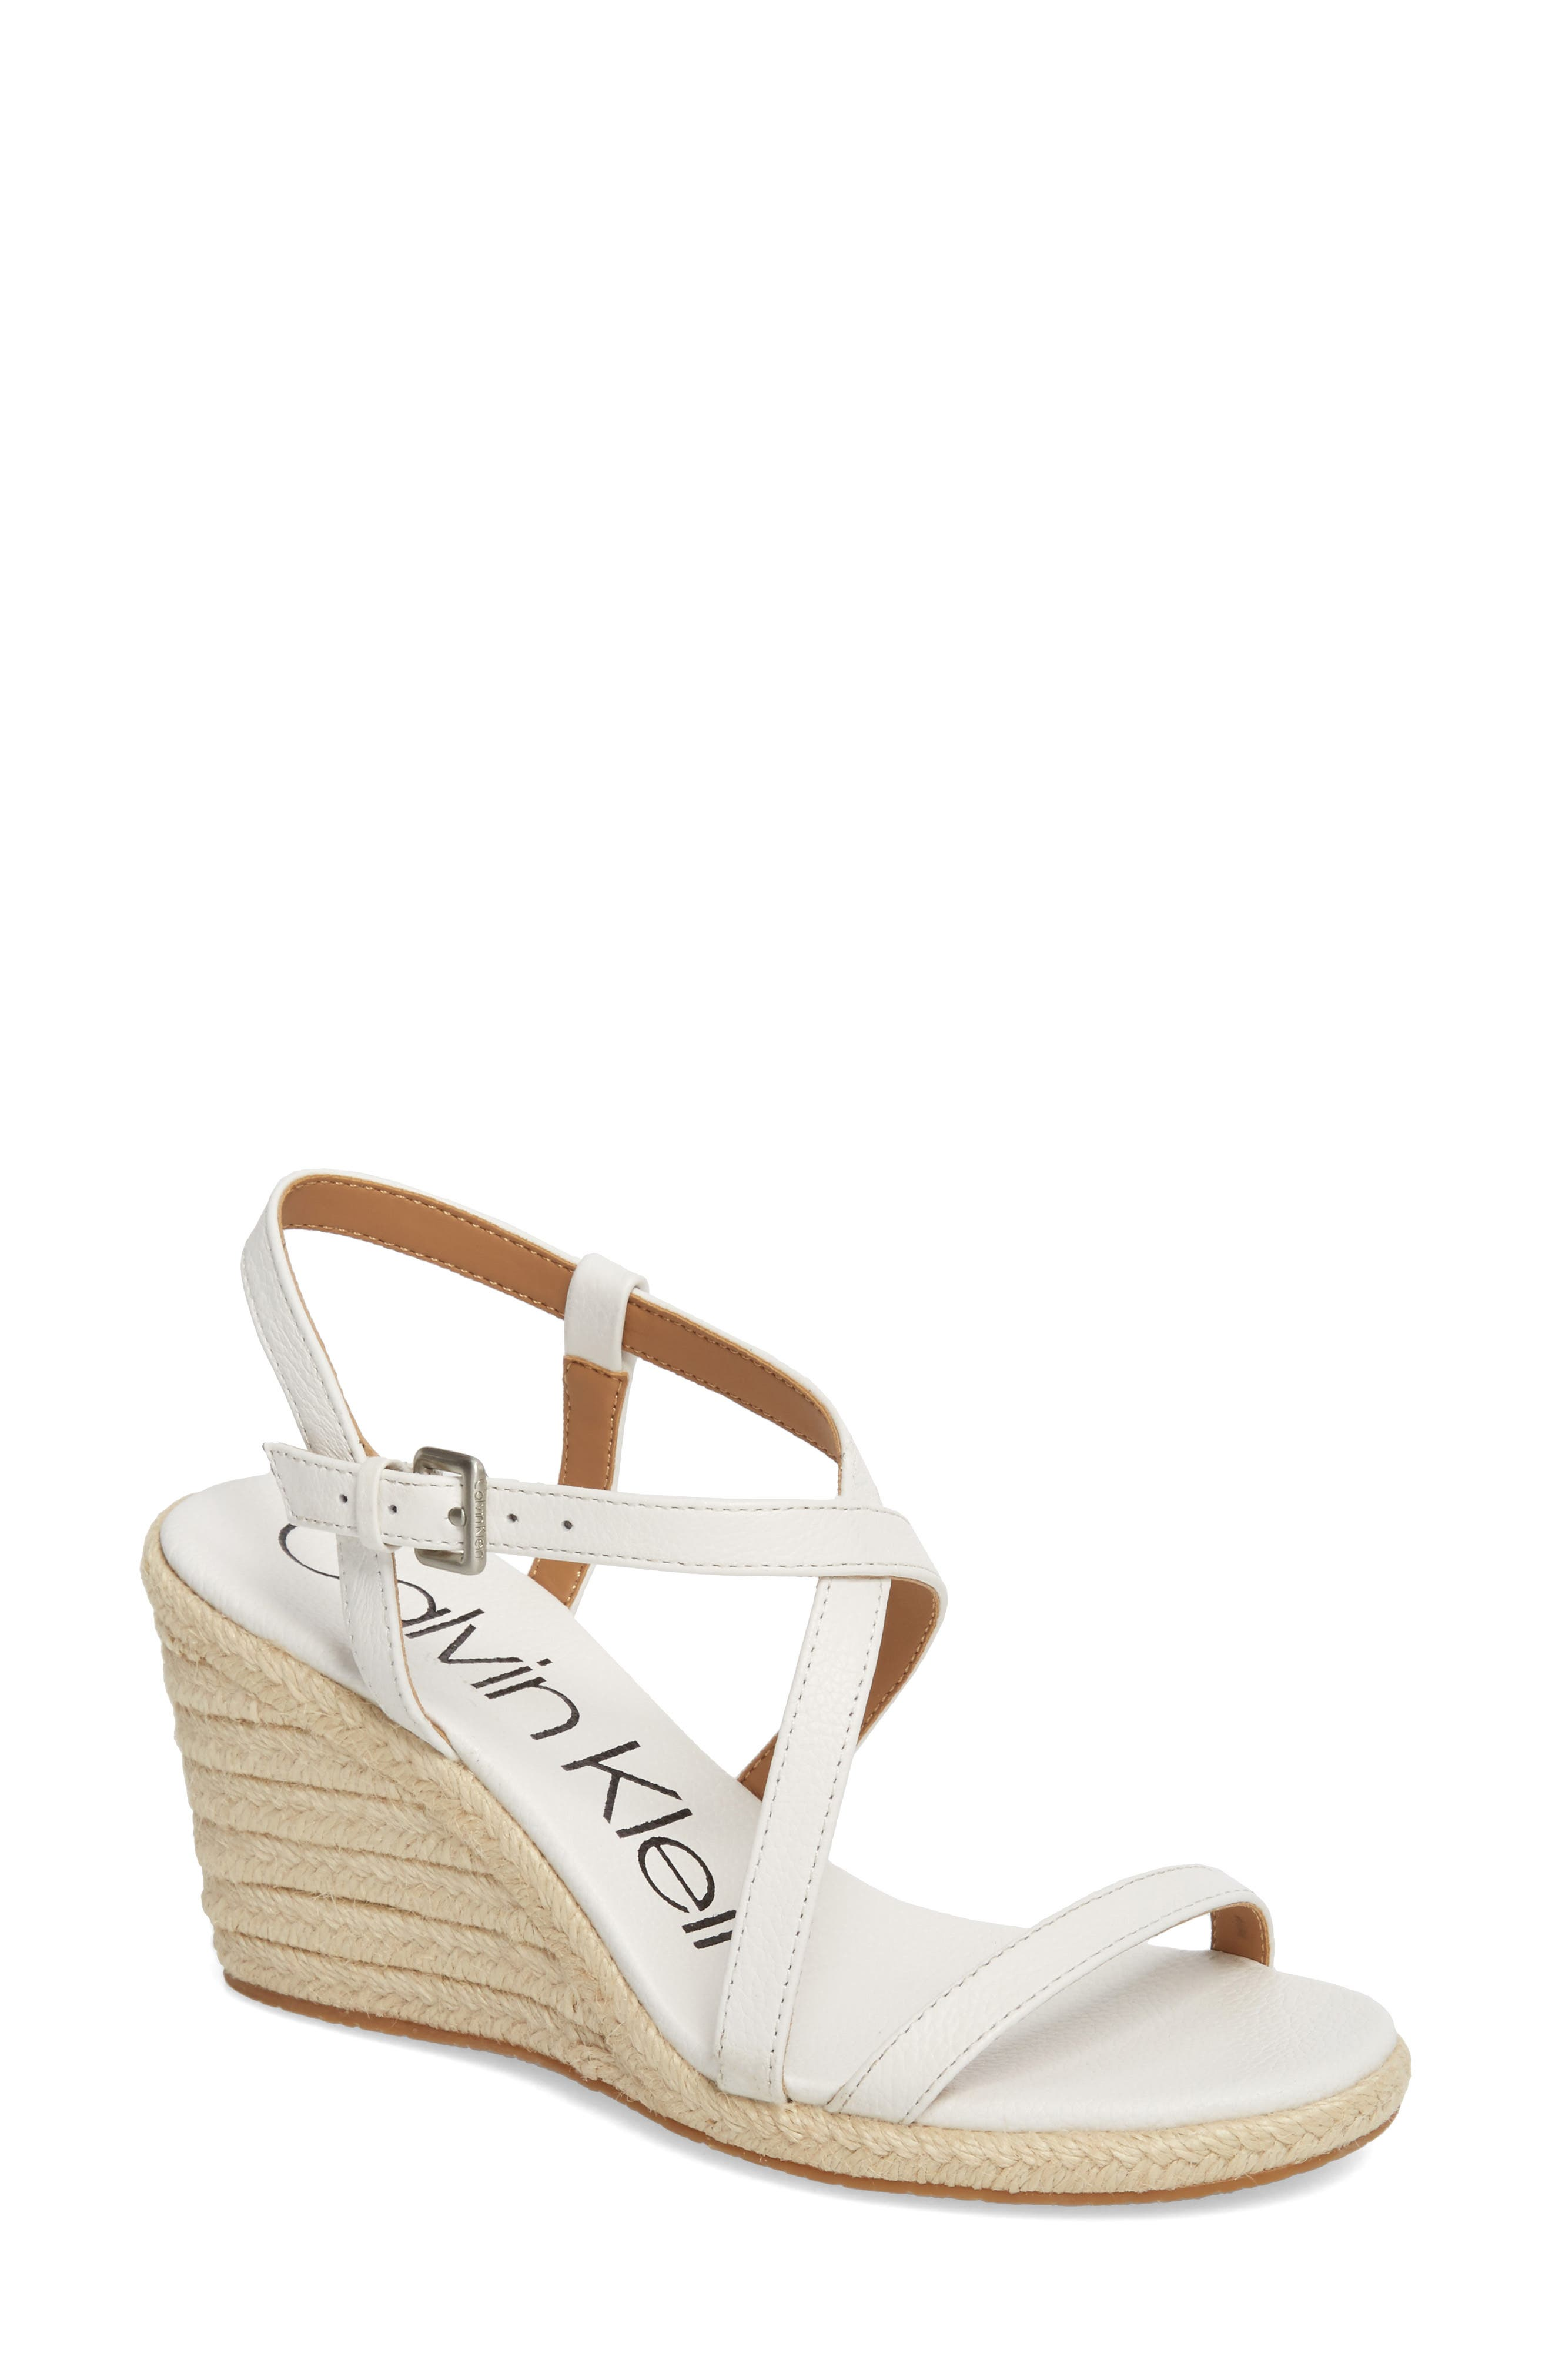 Bellemine Espadrille Wedge Sandal,                             Main thumbnail 1, color,                             PLATINUM WHITE PEBBLE LEATHER